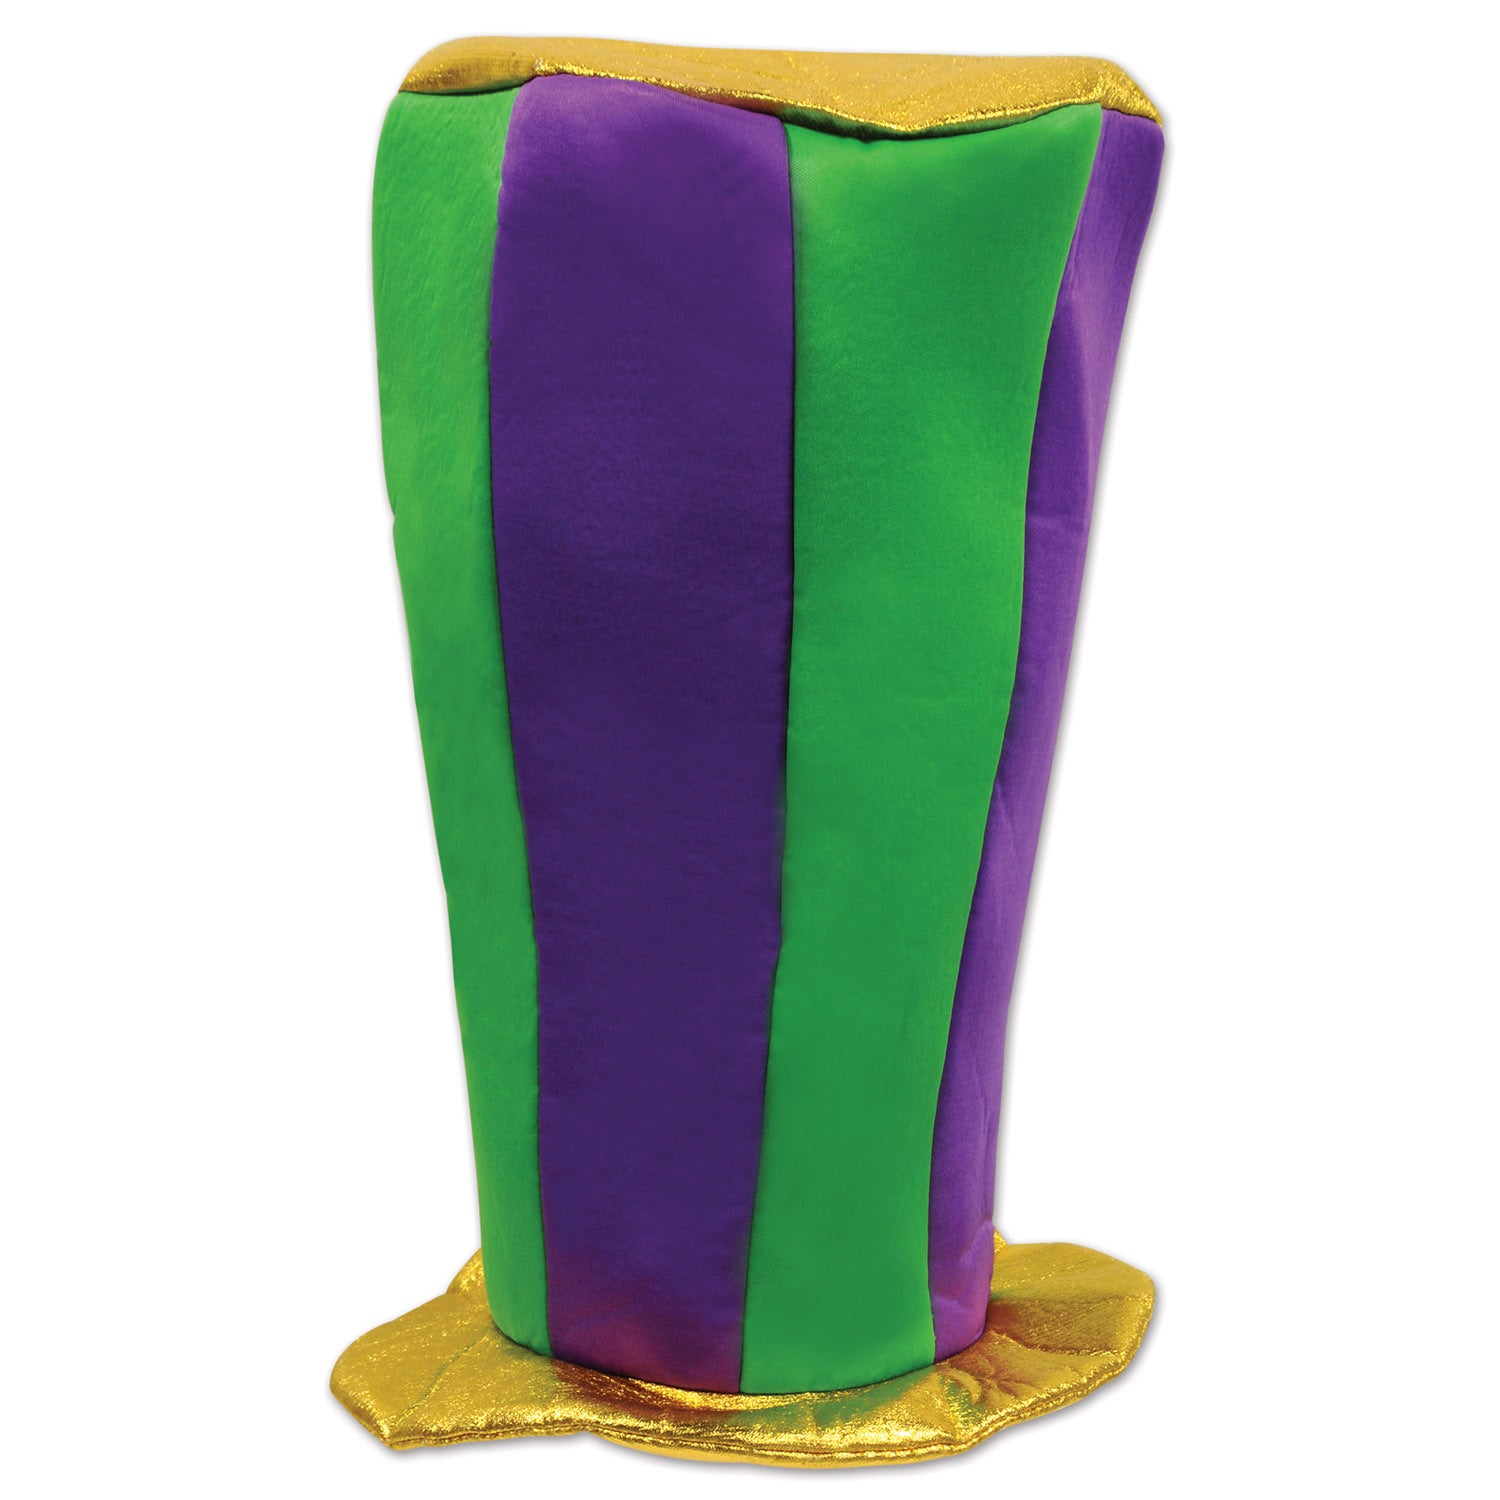 Mardi Gras Plush Tall Top Hat by Beistle - Mardi Gras Theme Decorations